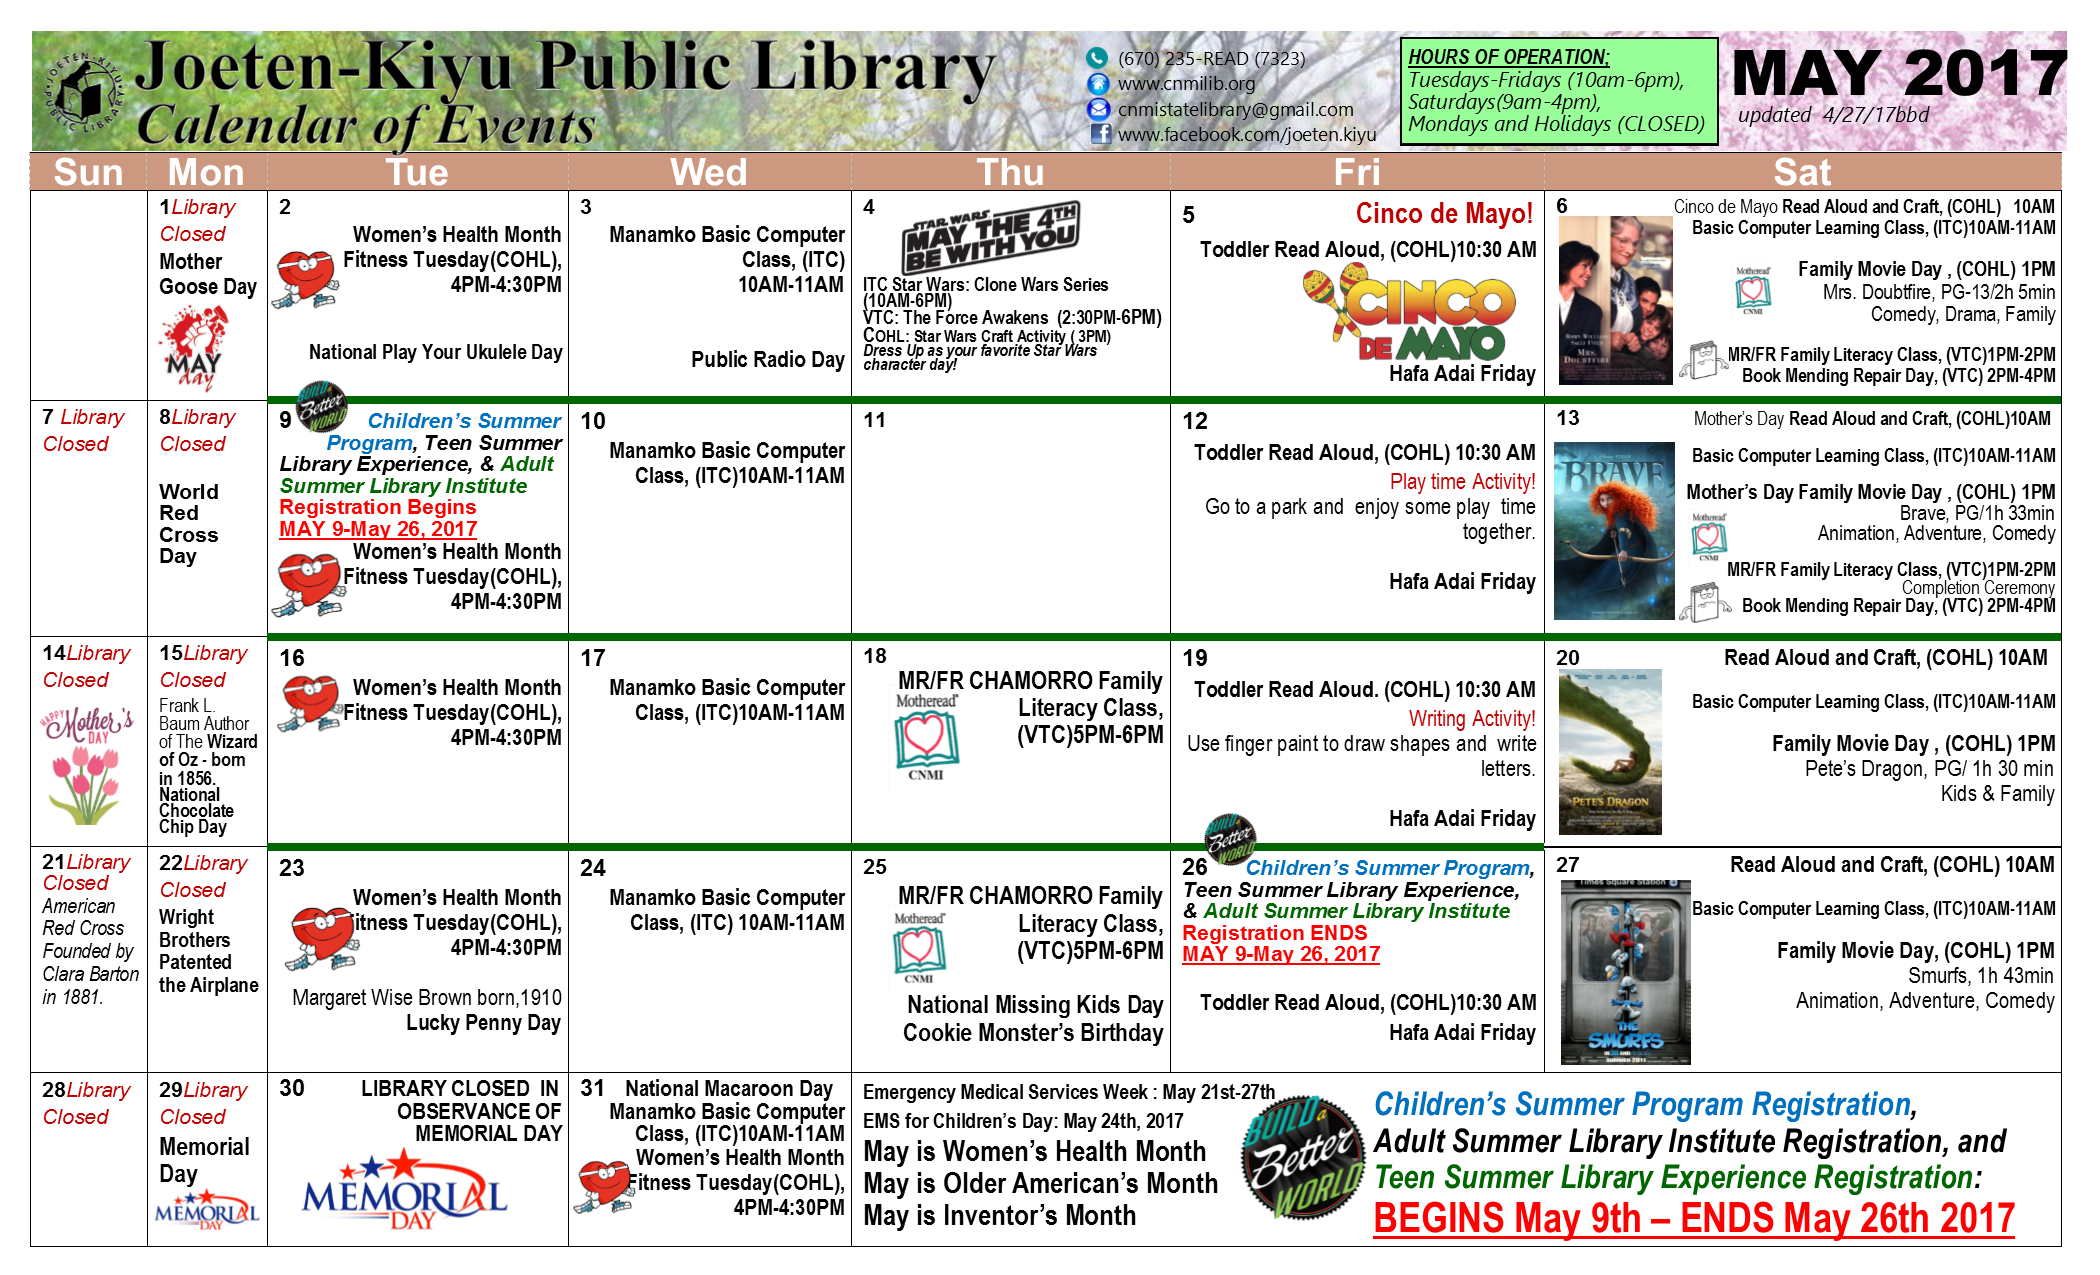 May Calendar With Events : May calendar of events joeten kiyu public library